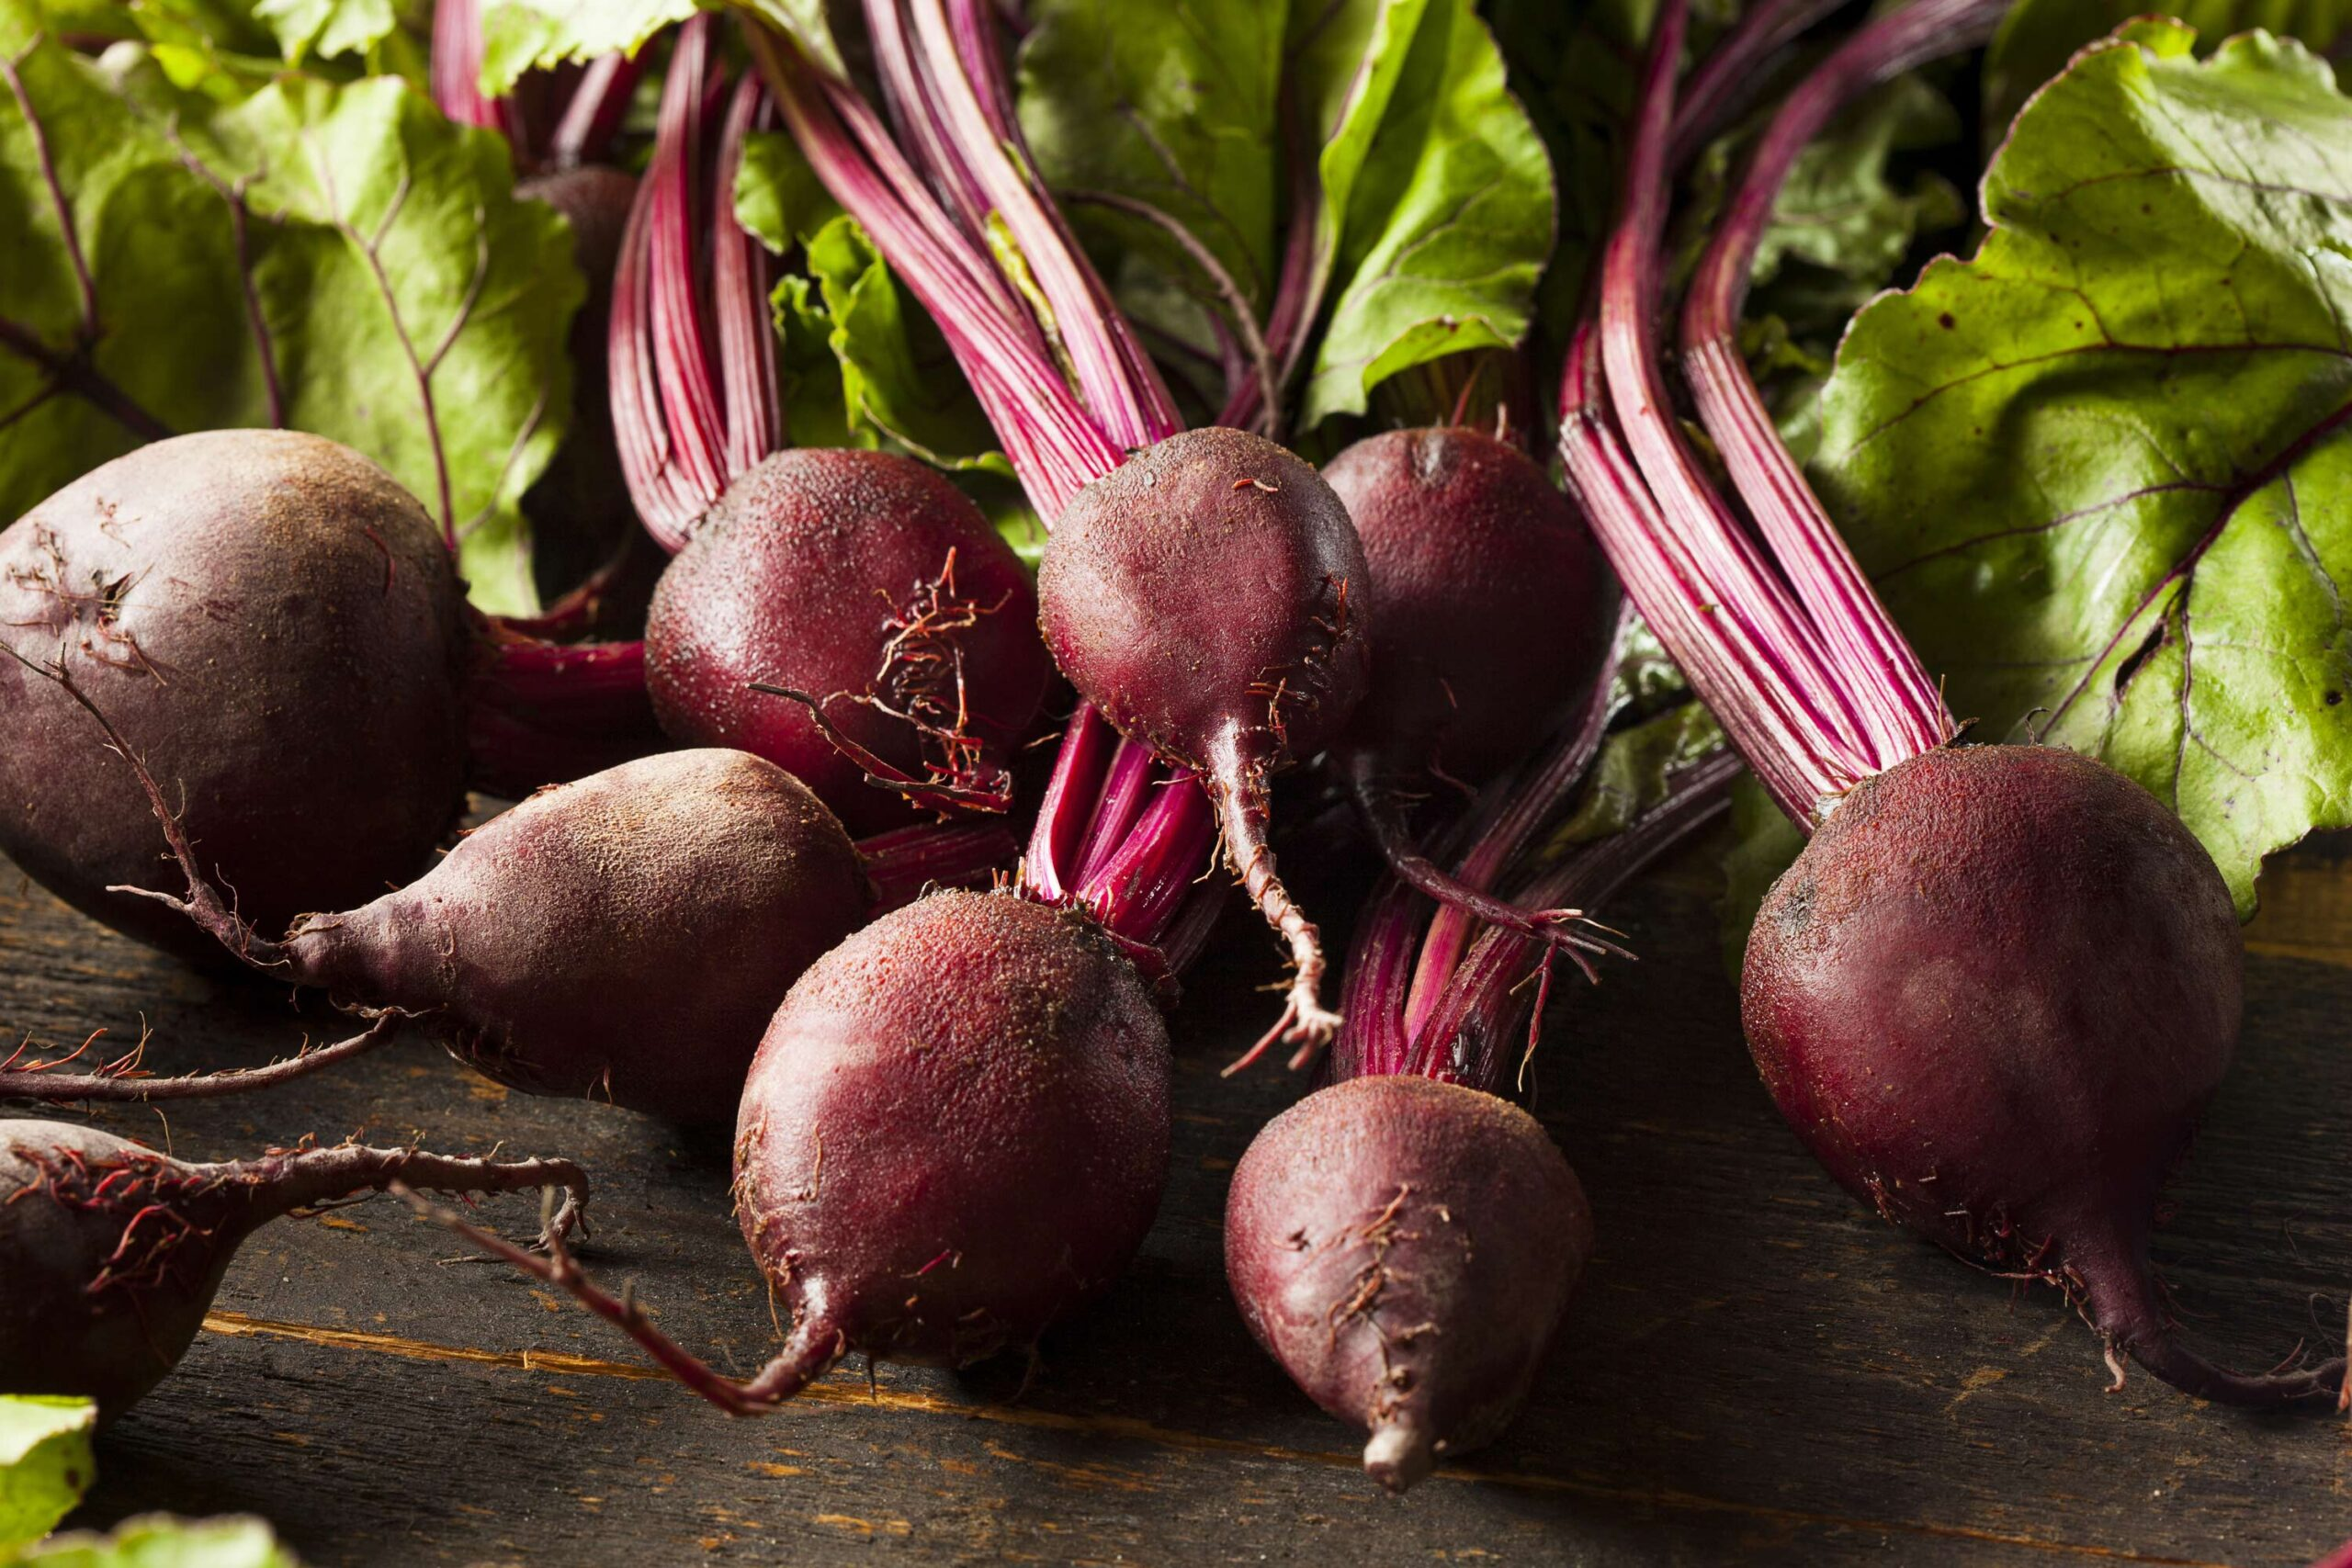 <i>Brent Hofacker/Adobe Stock</i><br/>Beets are filled with nutrients like vitamin C and iron.